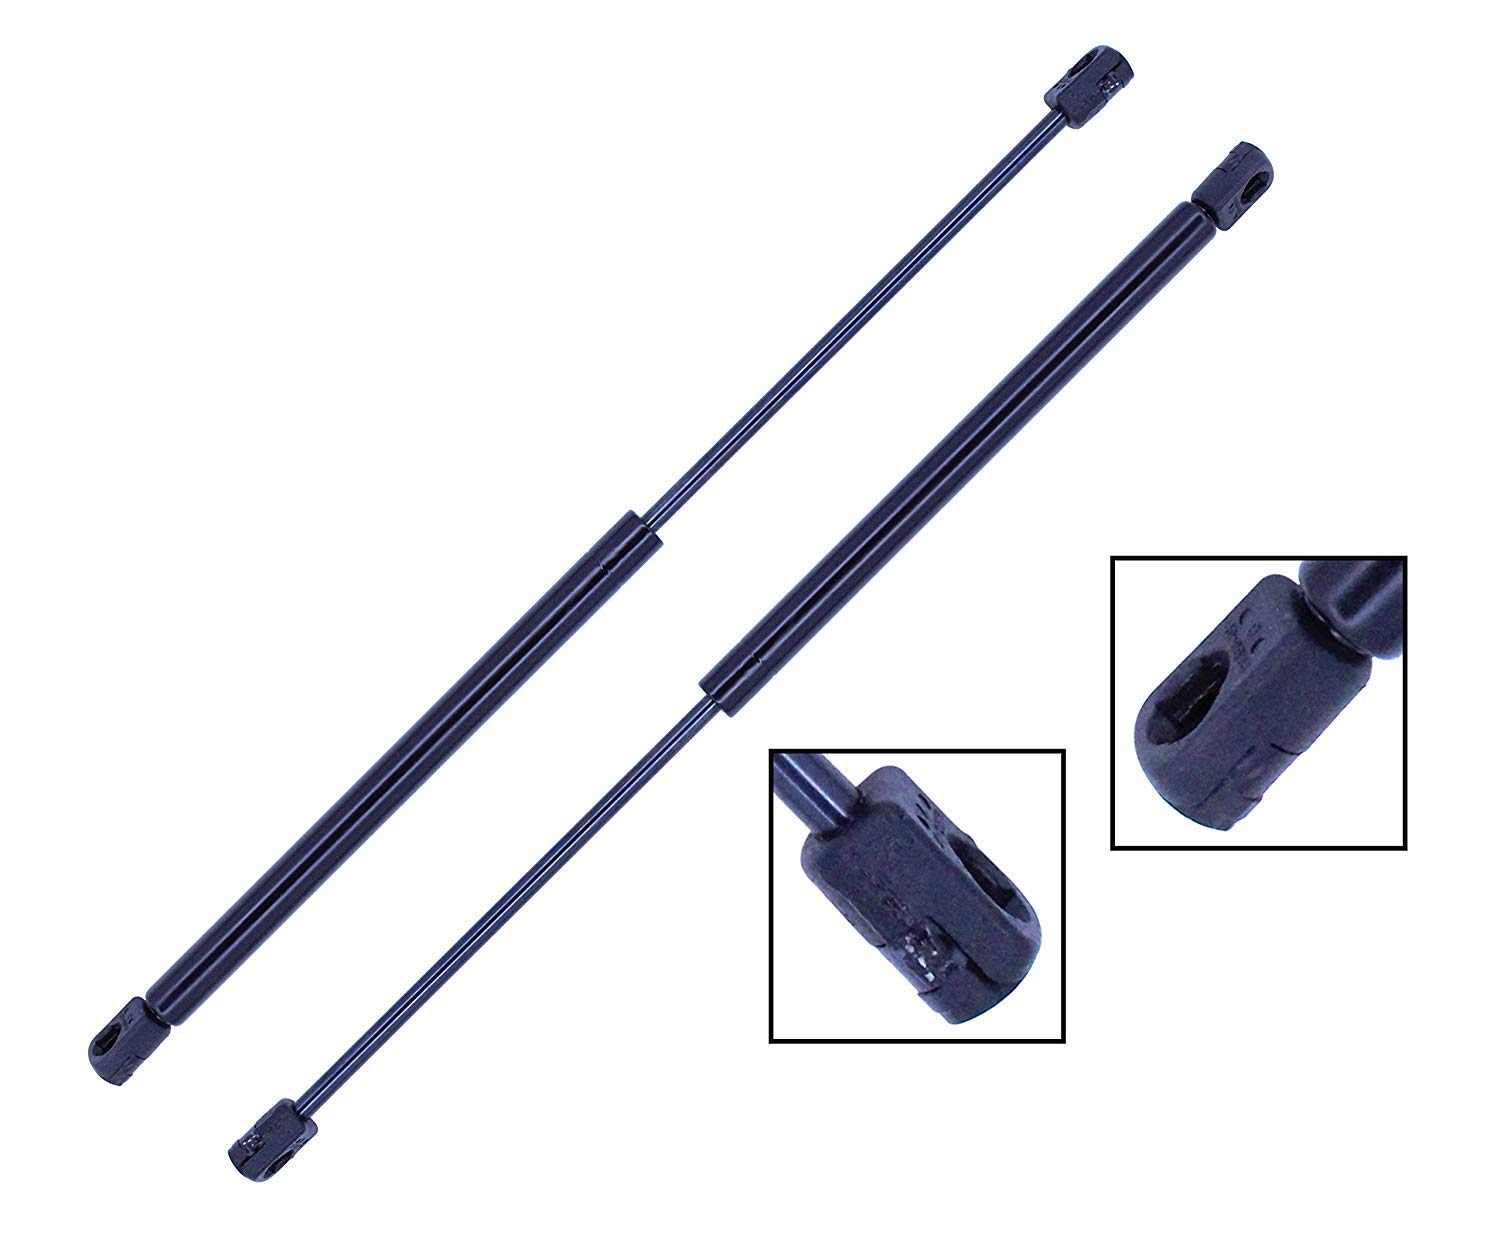 Qty Stabilus SG471004 Infiniti Front Hood FX35 FX37 FX50 QX70 2009 To 2017 Lift Supports 2